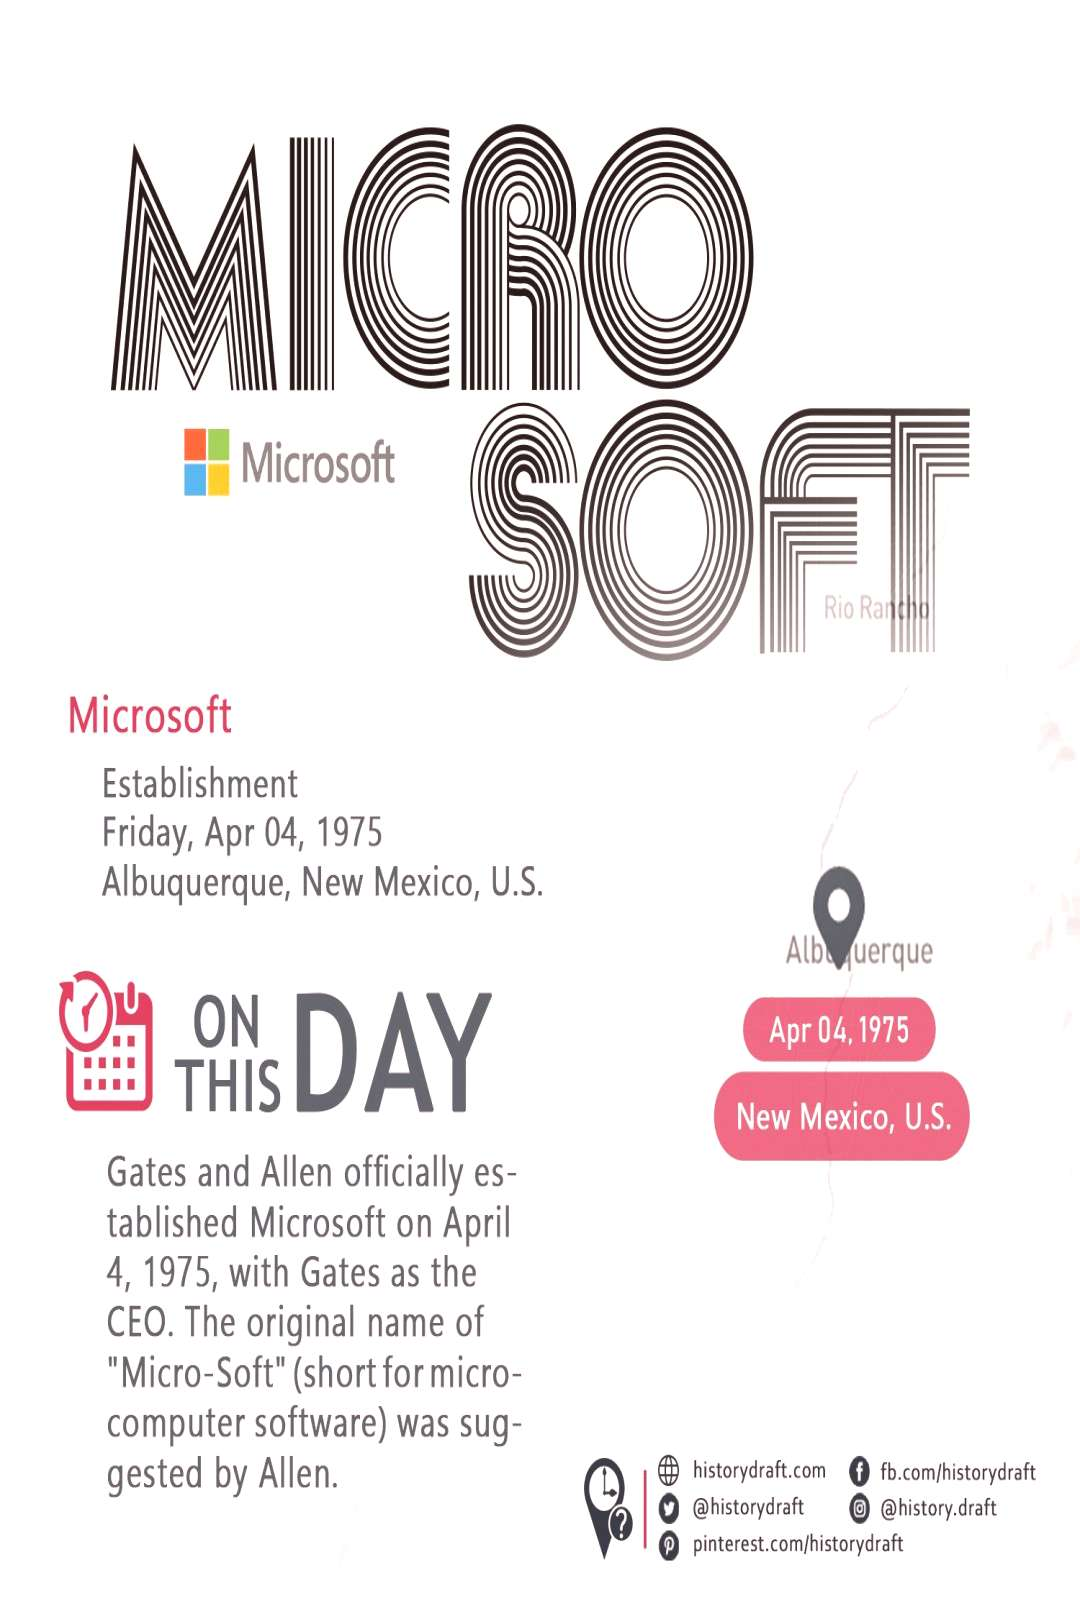 On this day in 1975, Bill Gates and Allen officially established Microsoft originally named Micro-S